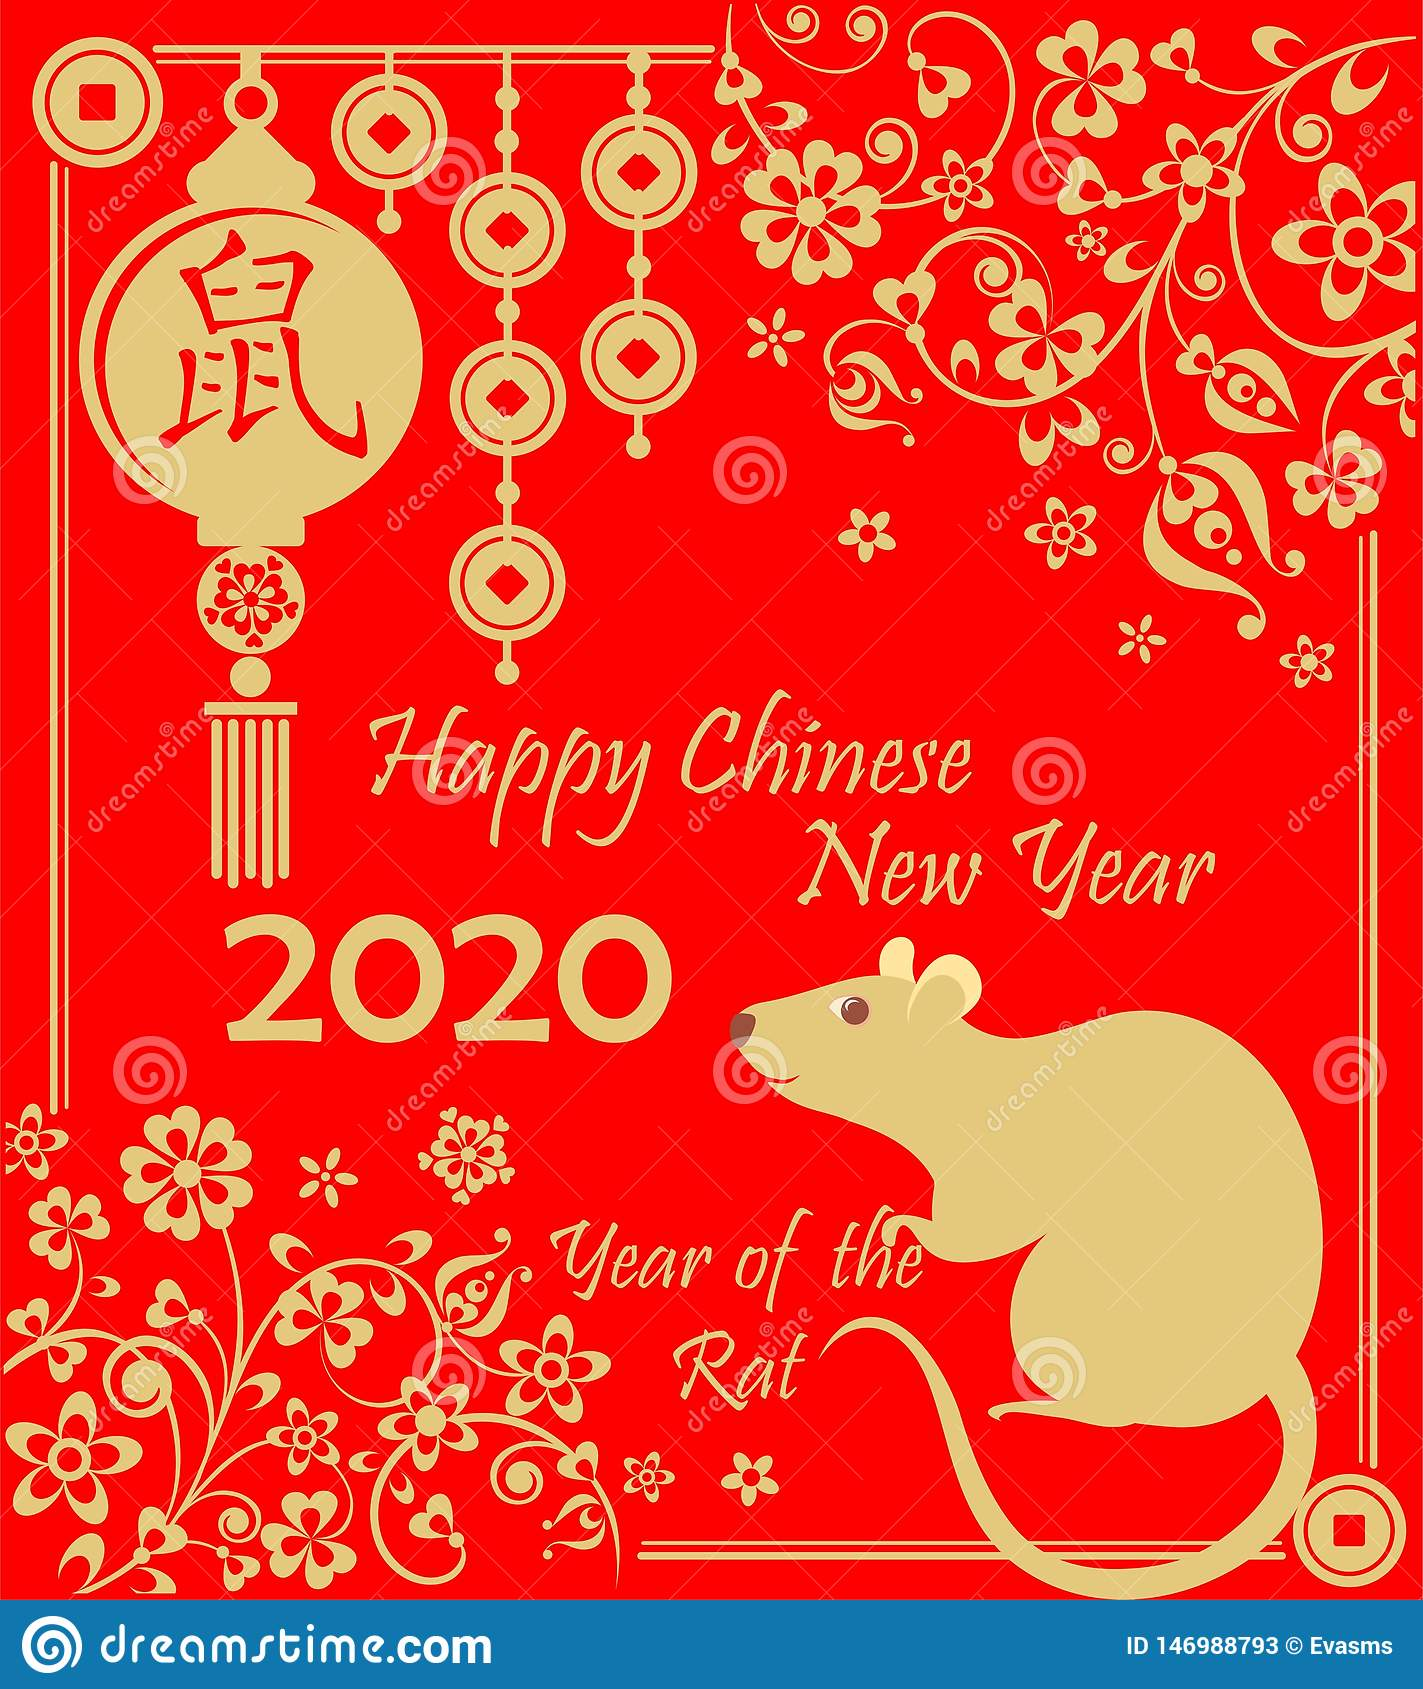 Happy Chinese New Year 2020 Year Of The Rat Decorative ...